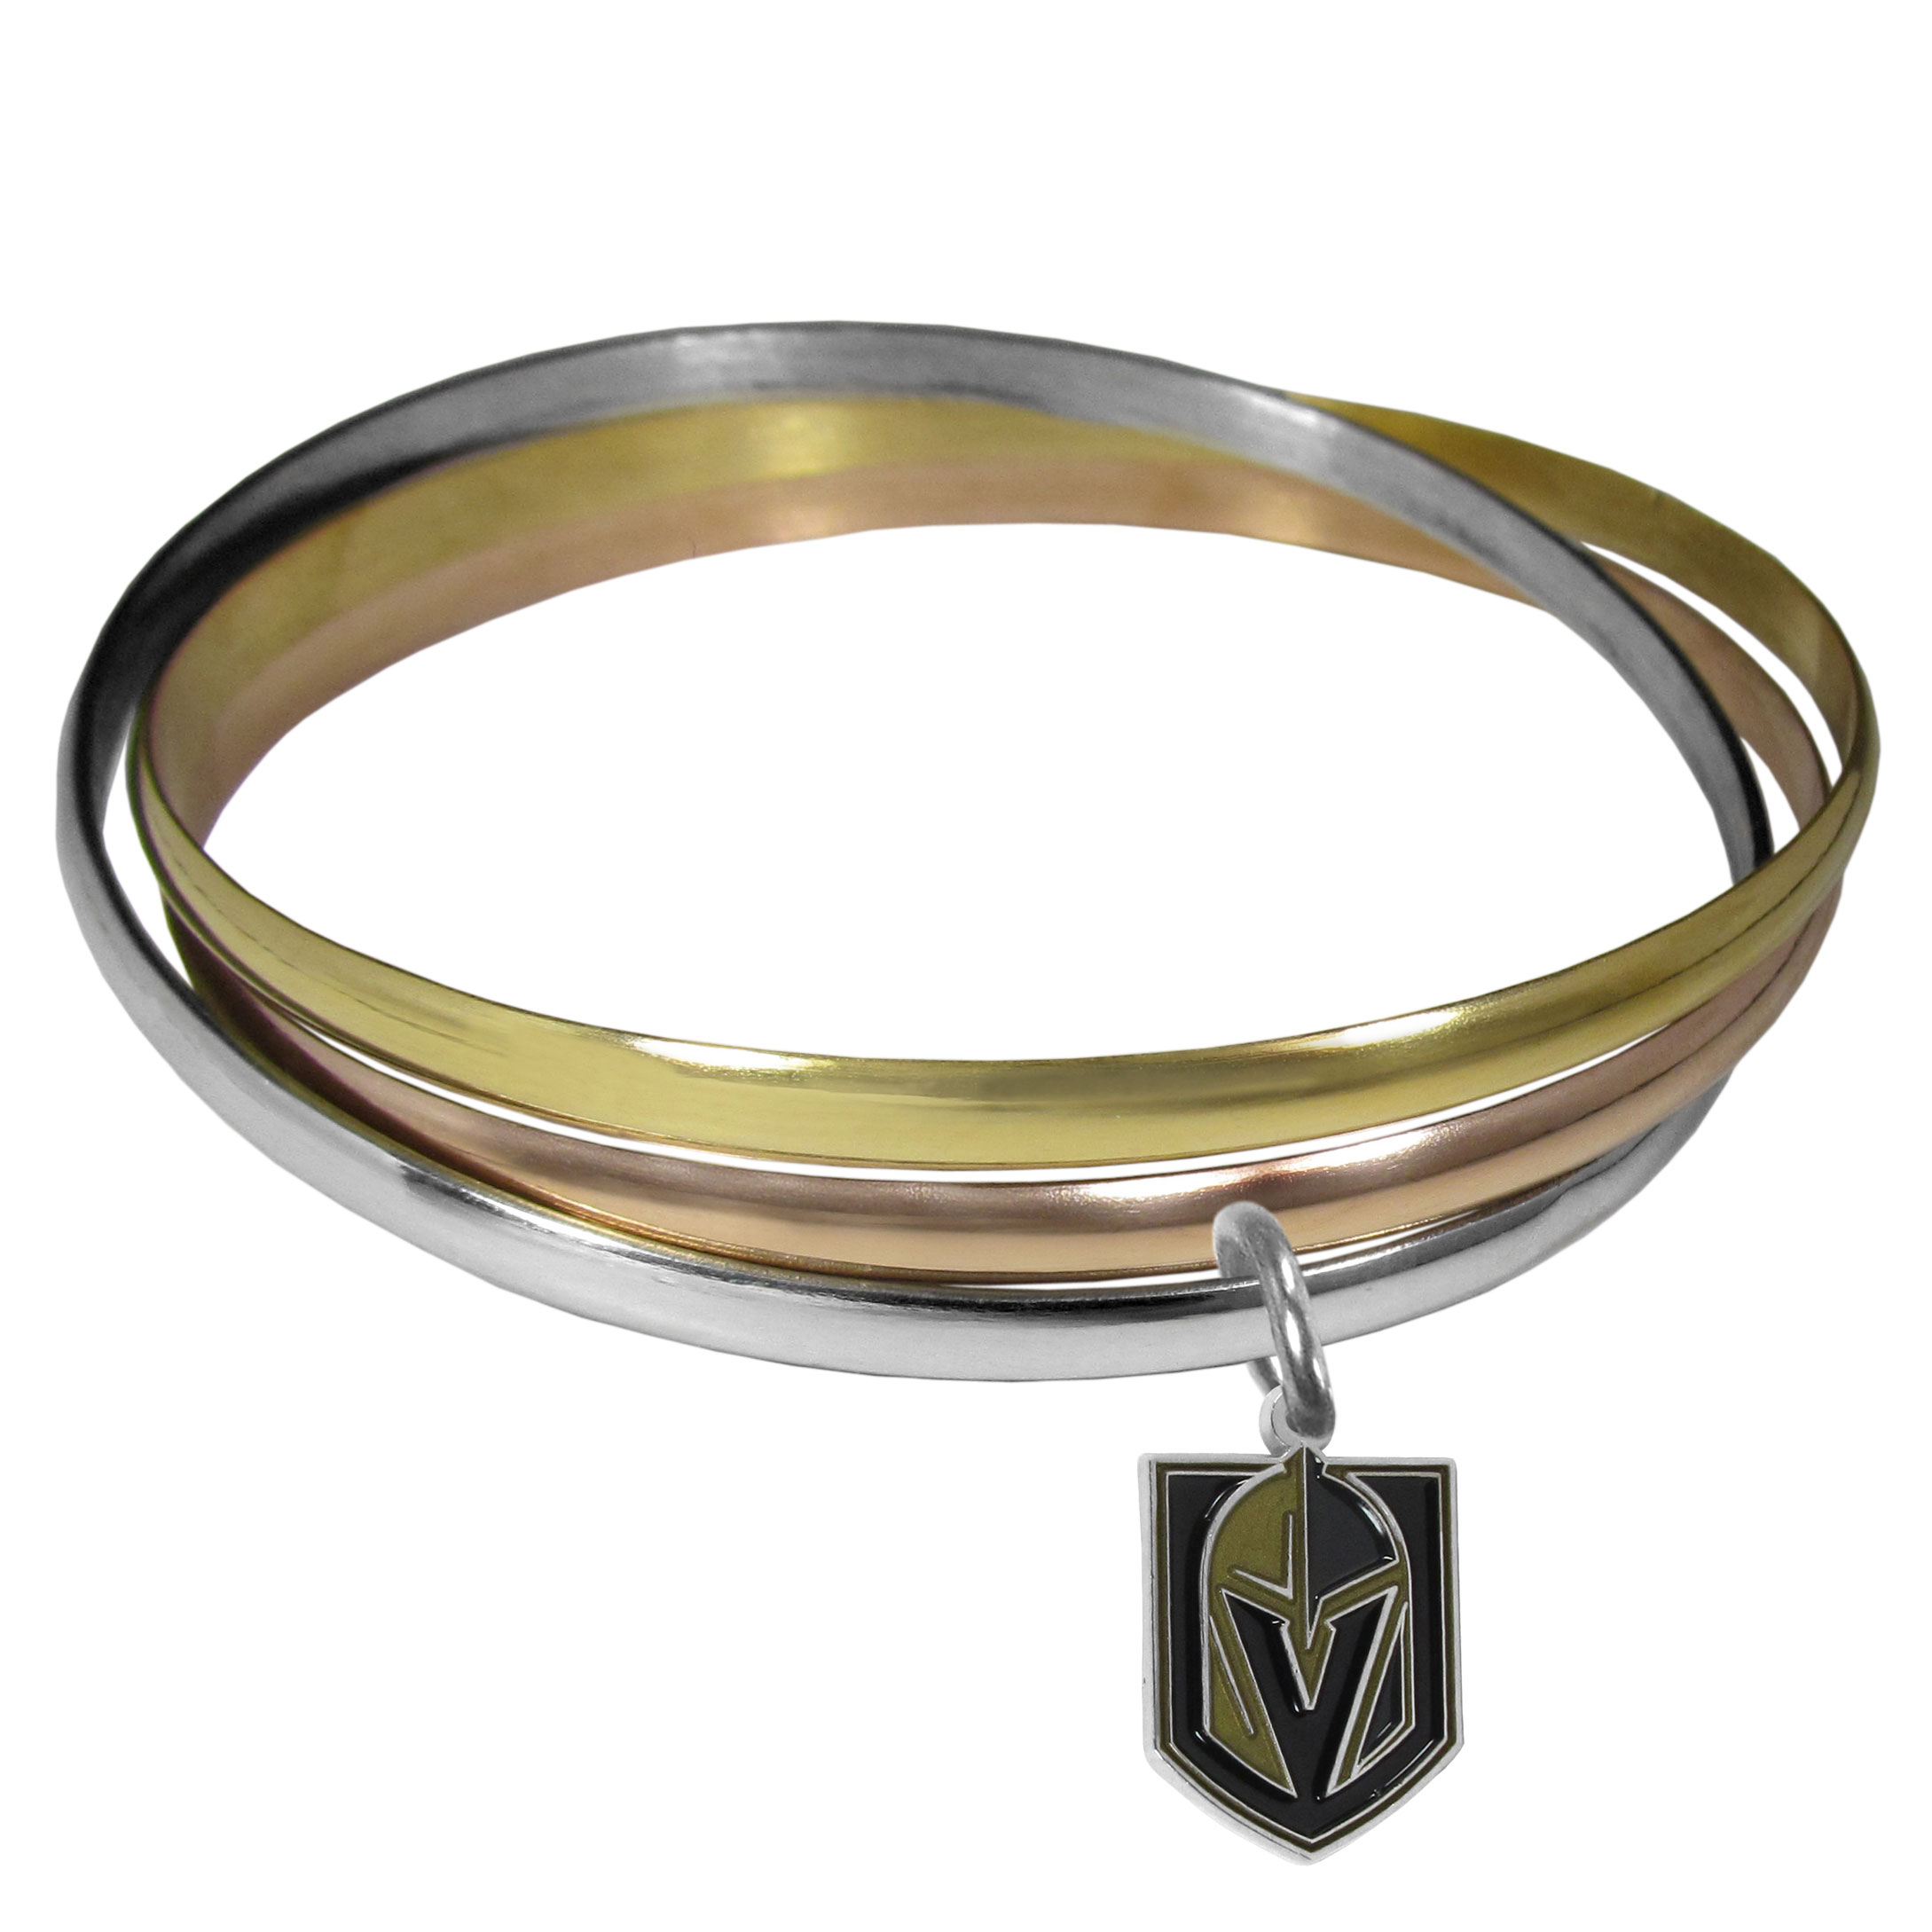 Vegas Golden Knights® Tri-color Bangle Bracelet - These beautiful bangles come in a interlocking style and feature a fully cast Vegas Golden Knights® charm with enameled team colors. The bracelet has a silver toned bangle, gold tone bangle and brass toned bangle.